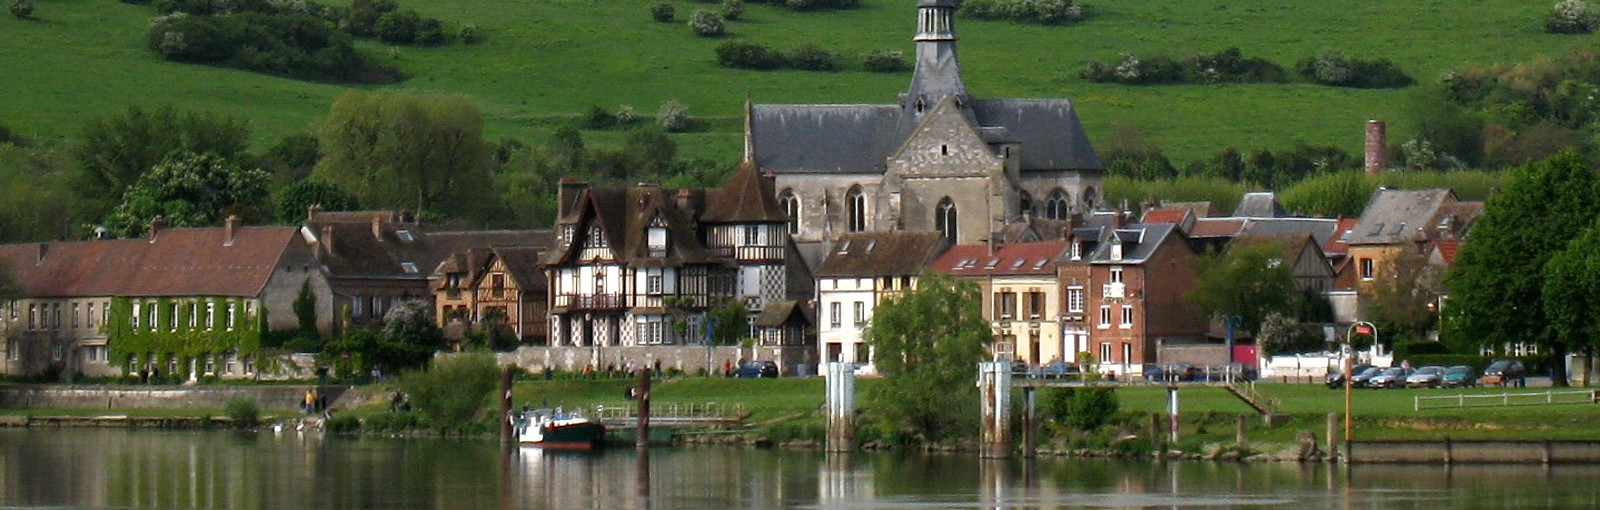 Tours Normandy off-the-beaten tracks: Rouen, the Norman abbeys route & the Alabaster coast - 诺曼底 - 从巴黎出发的多日游